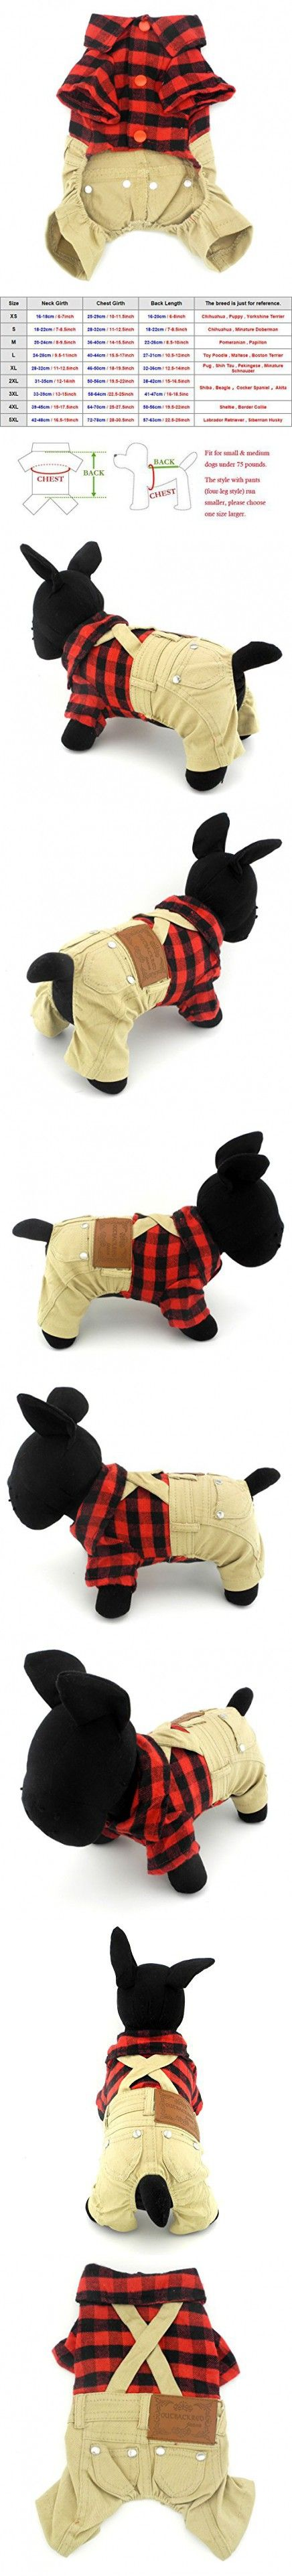 SMALLLEE_LUCKY_STORE for pets Red Plaid Shirts Sweater with Khaki Overalls Pants Jumpsuit Outfits L